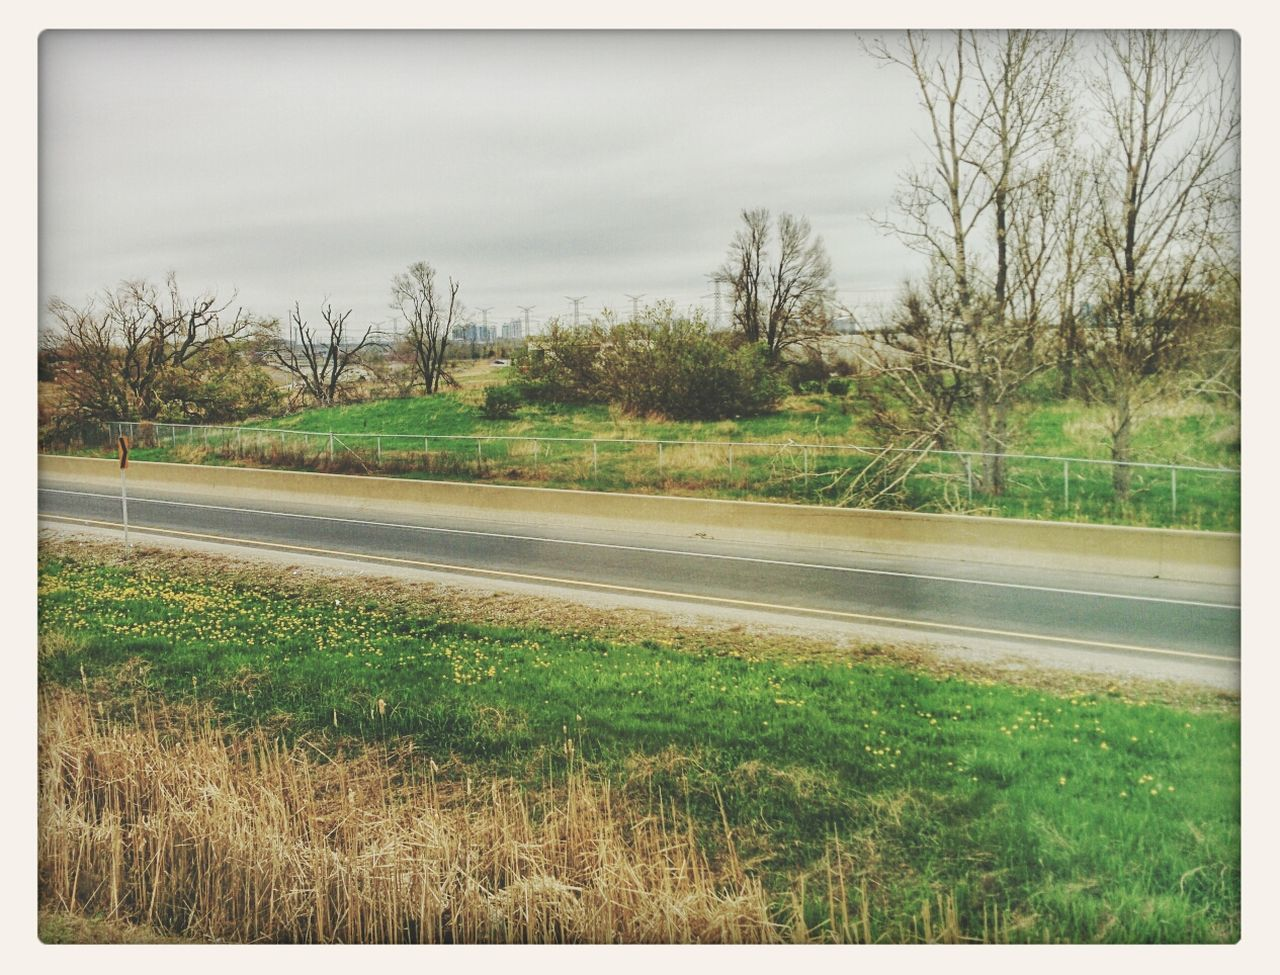 tree, grass, road, no people, field, nature, day, landscape, outdoors, tranquil scene, scenics, sky, transportation, tranquility, beauty in nature, bare tree